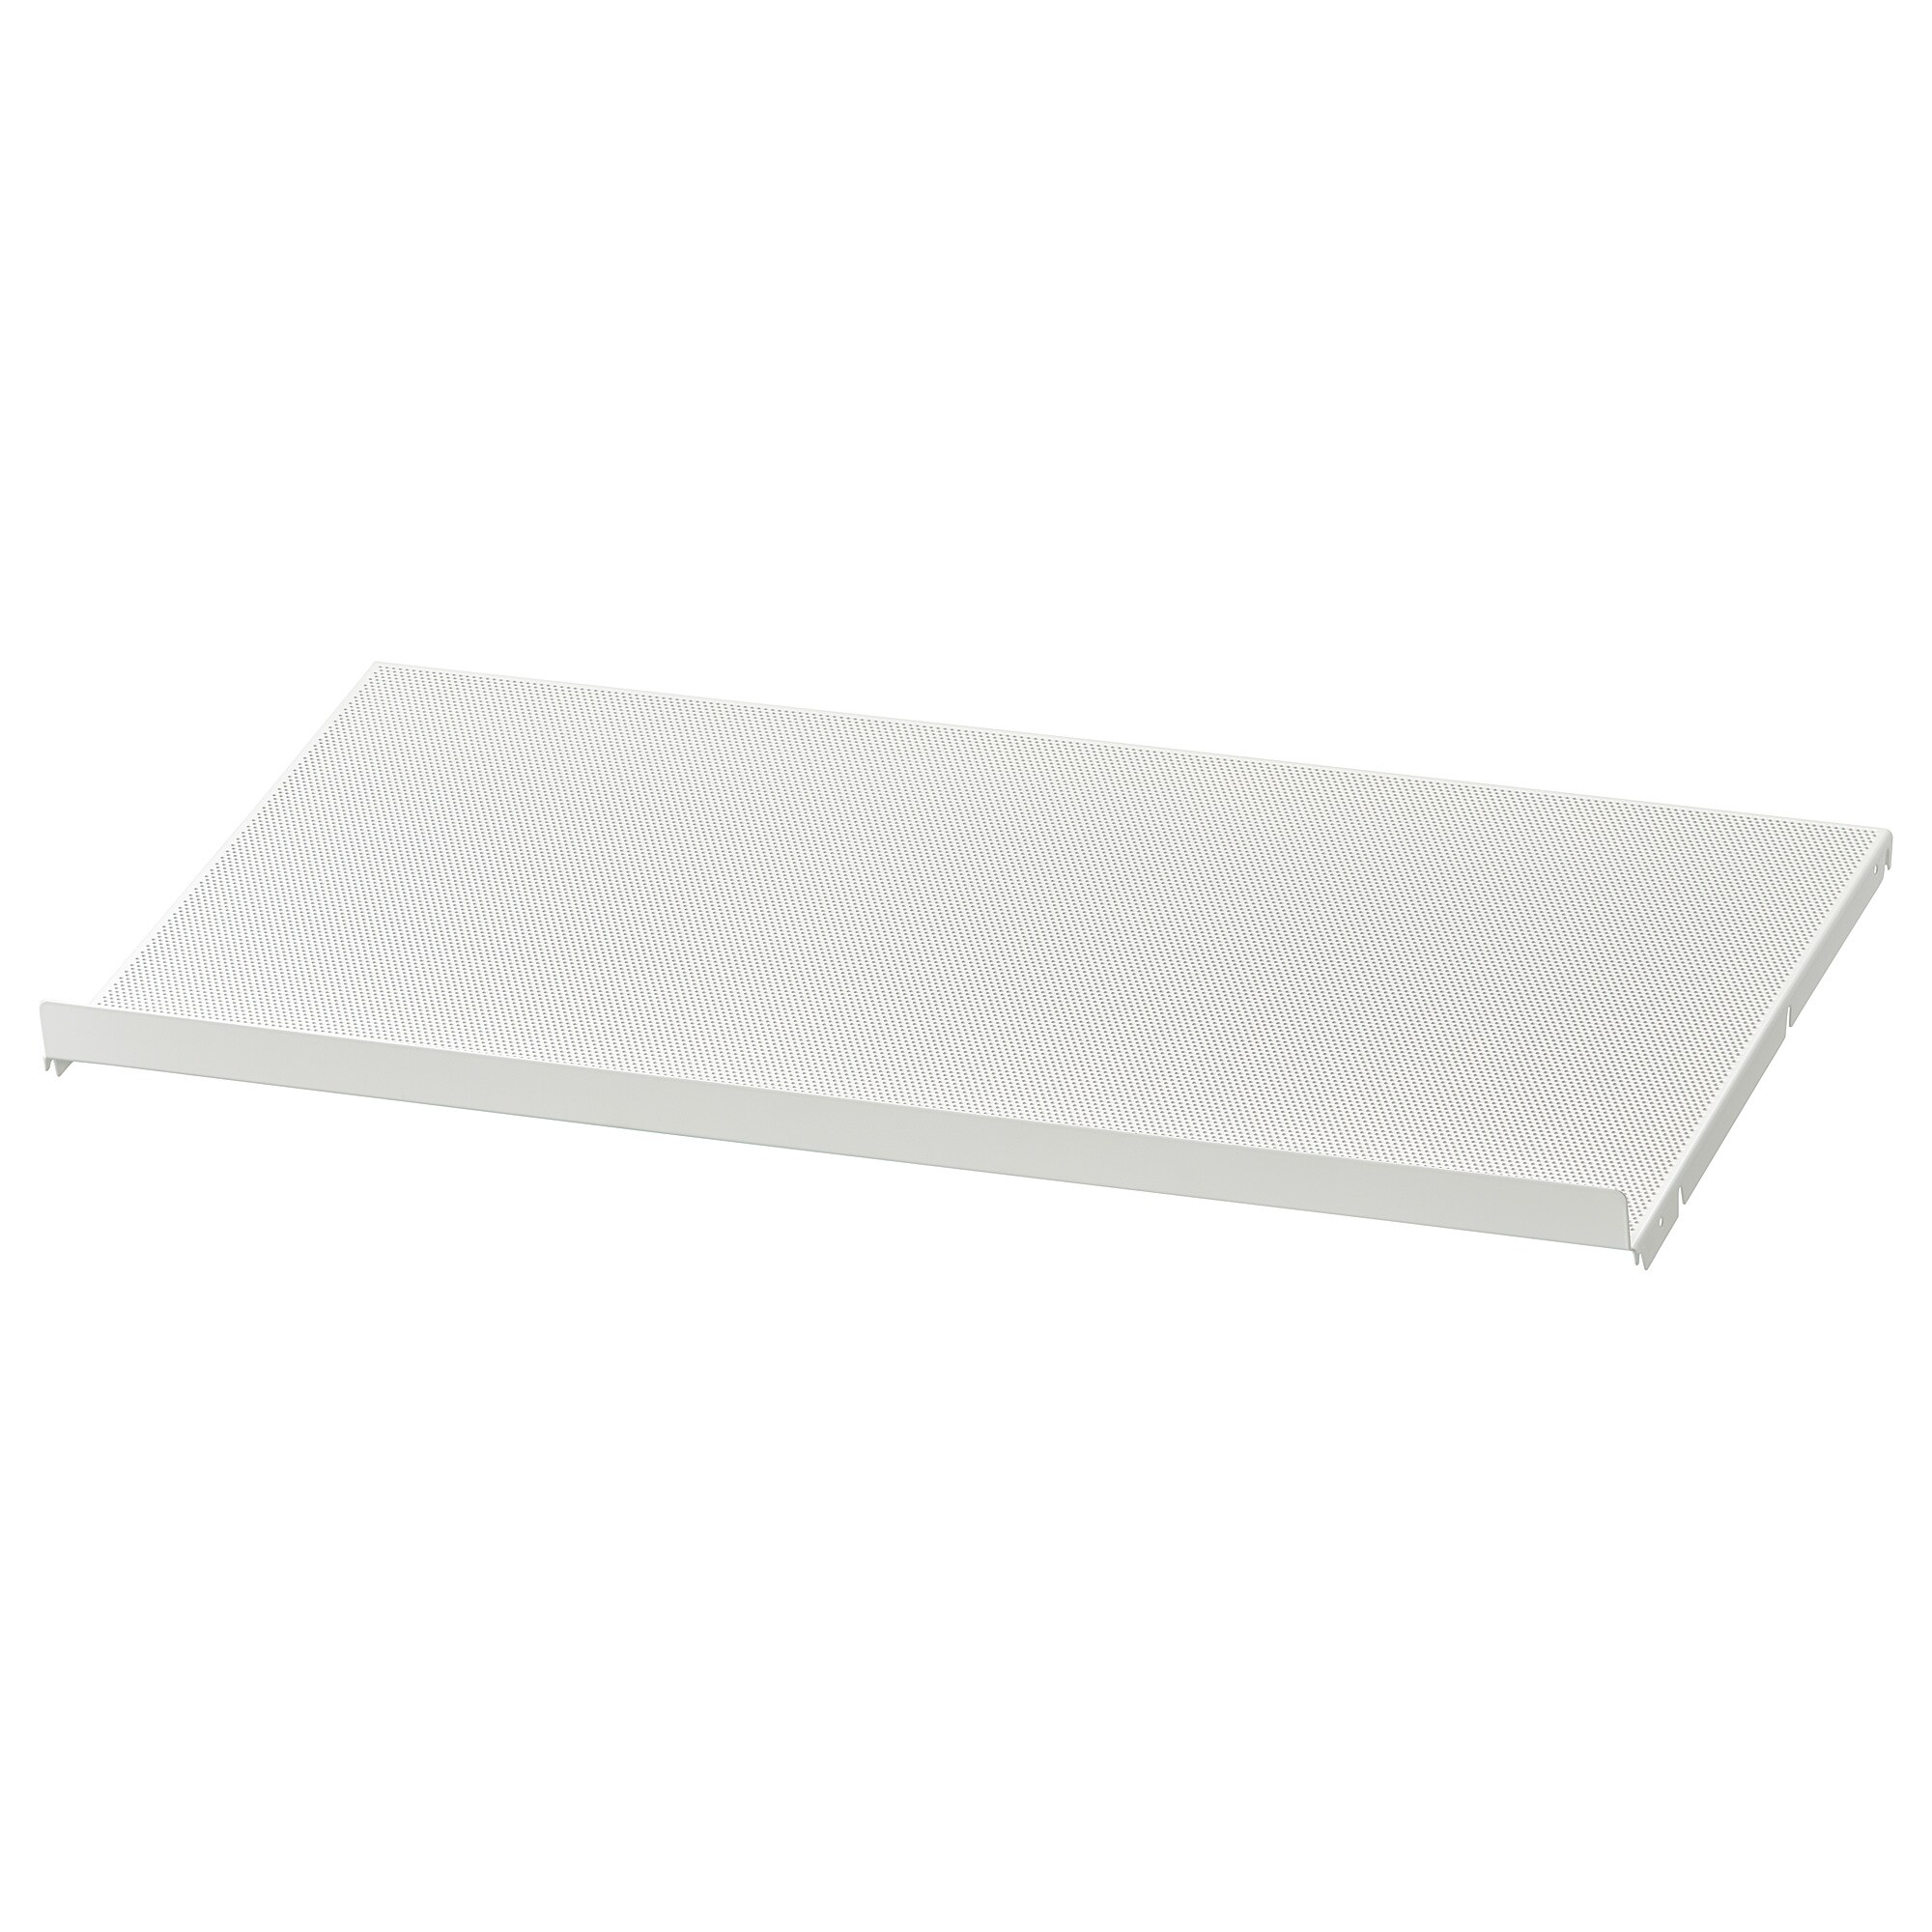 https://www.ikea.com/fr/fr/images/products/hjaelpa-shoe-shelf__0727294_PE736449_S5.JPG?f=g